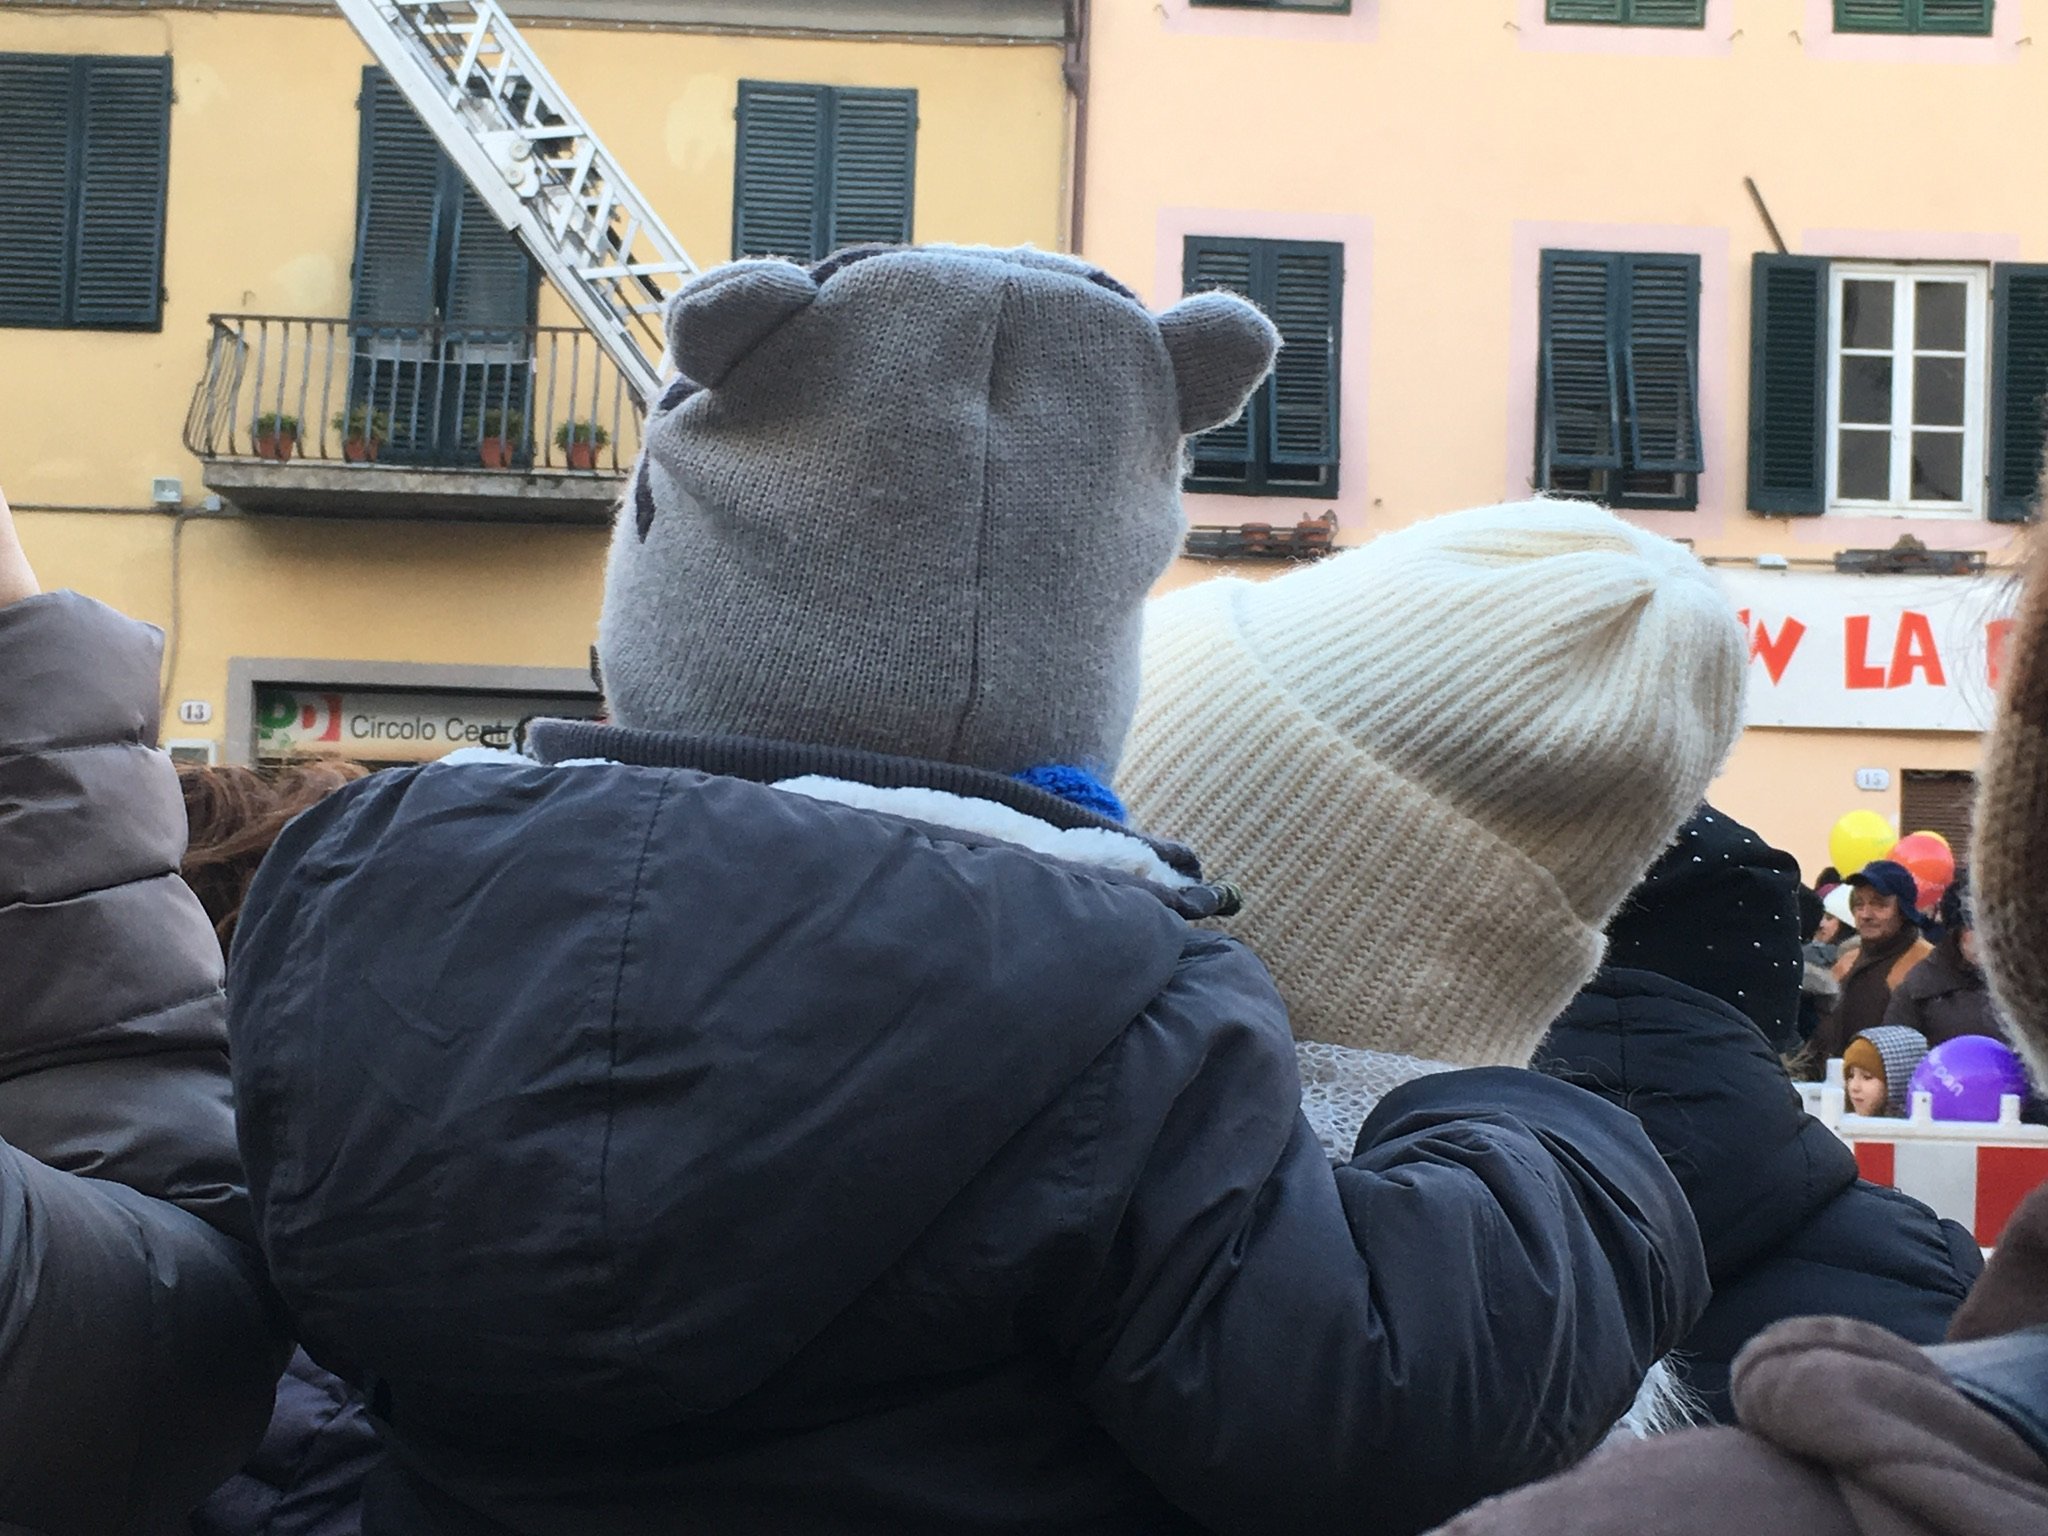 Waiting for Befana to arrive.